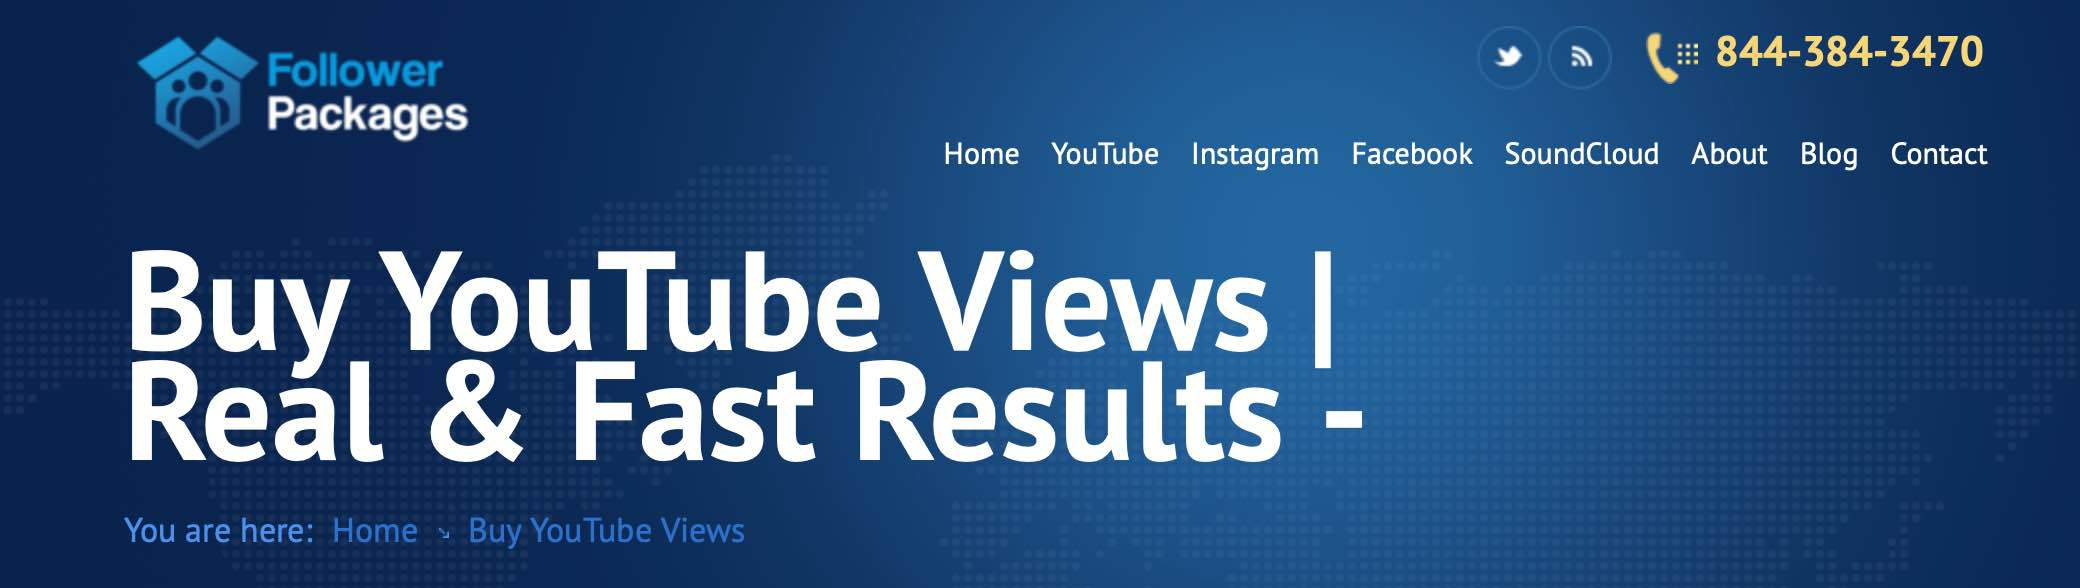 Buy YouTube Views | Real & Fast Results